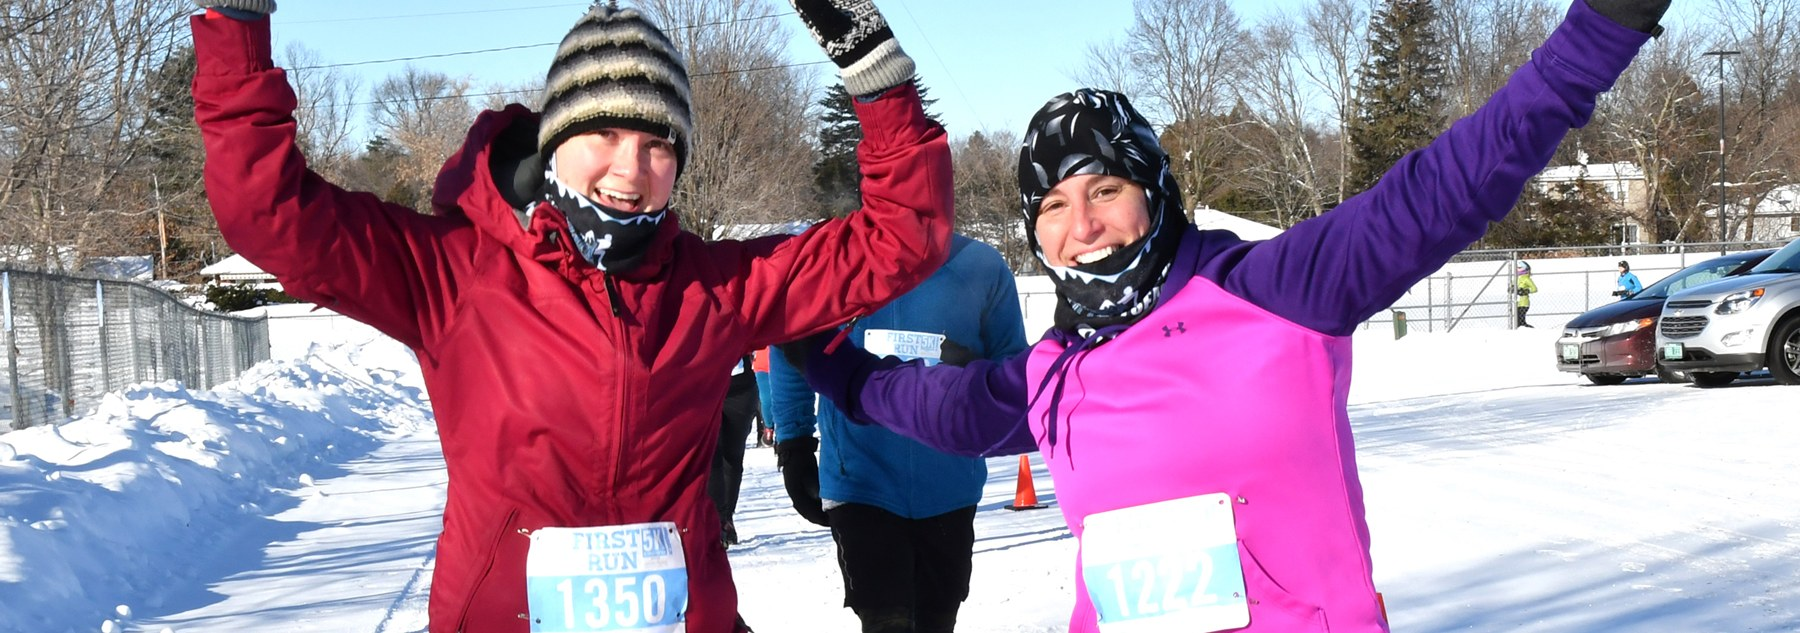 Ladies with arms up running in the winter